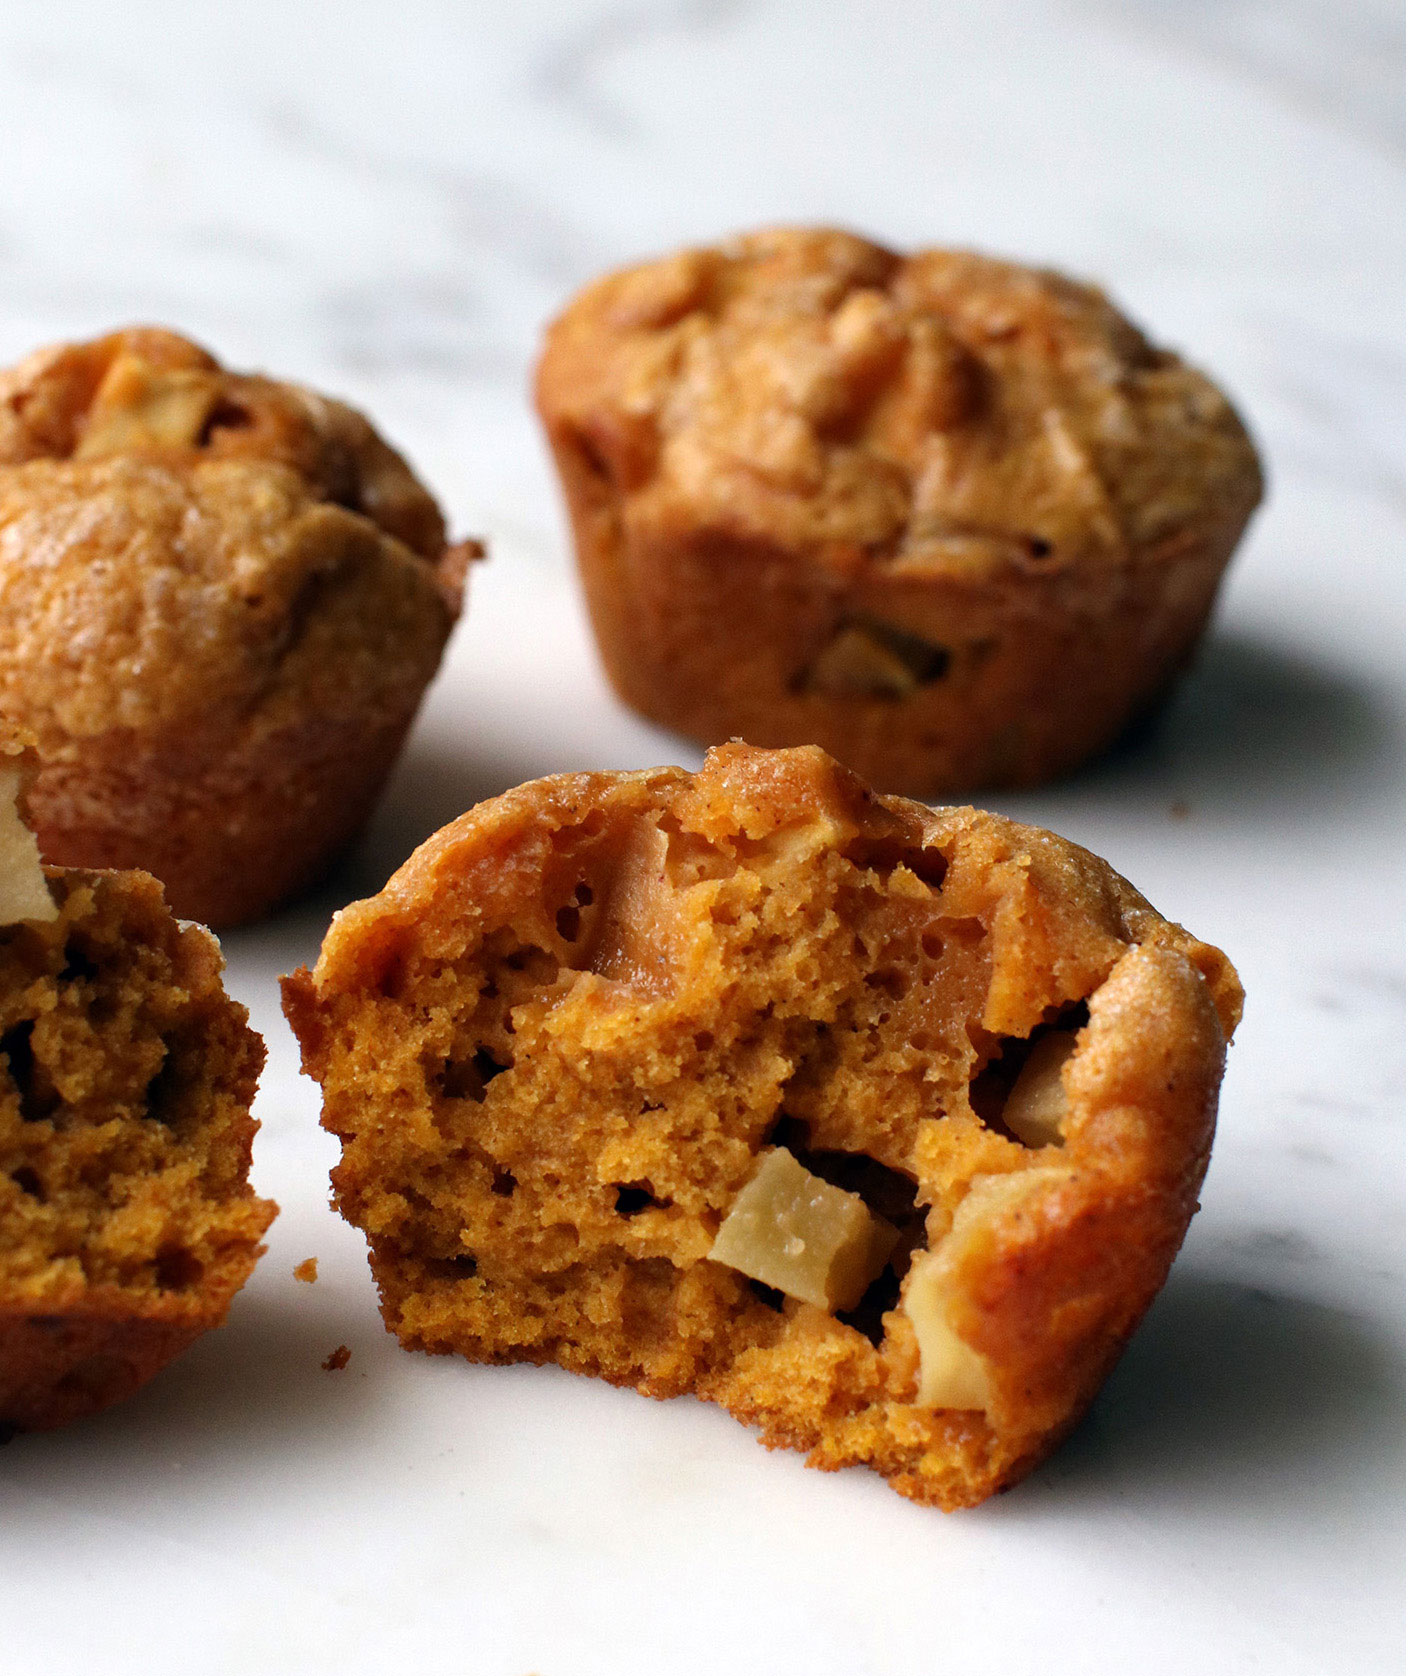 Halloween food ideas, easy Halloween party food - Pumpkin Muffins With Chopped Apple or Pear